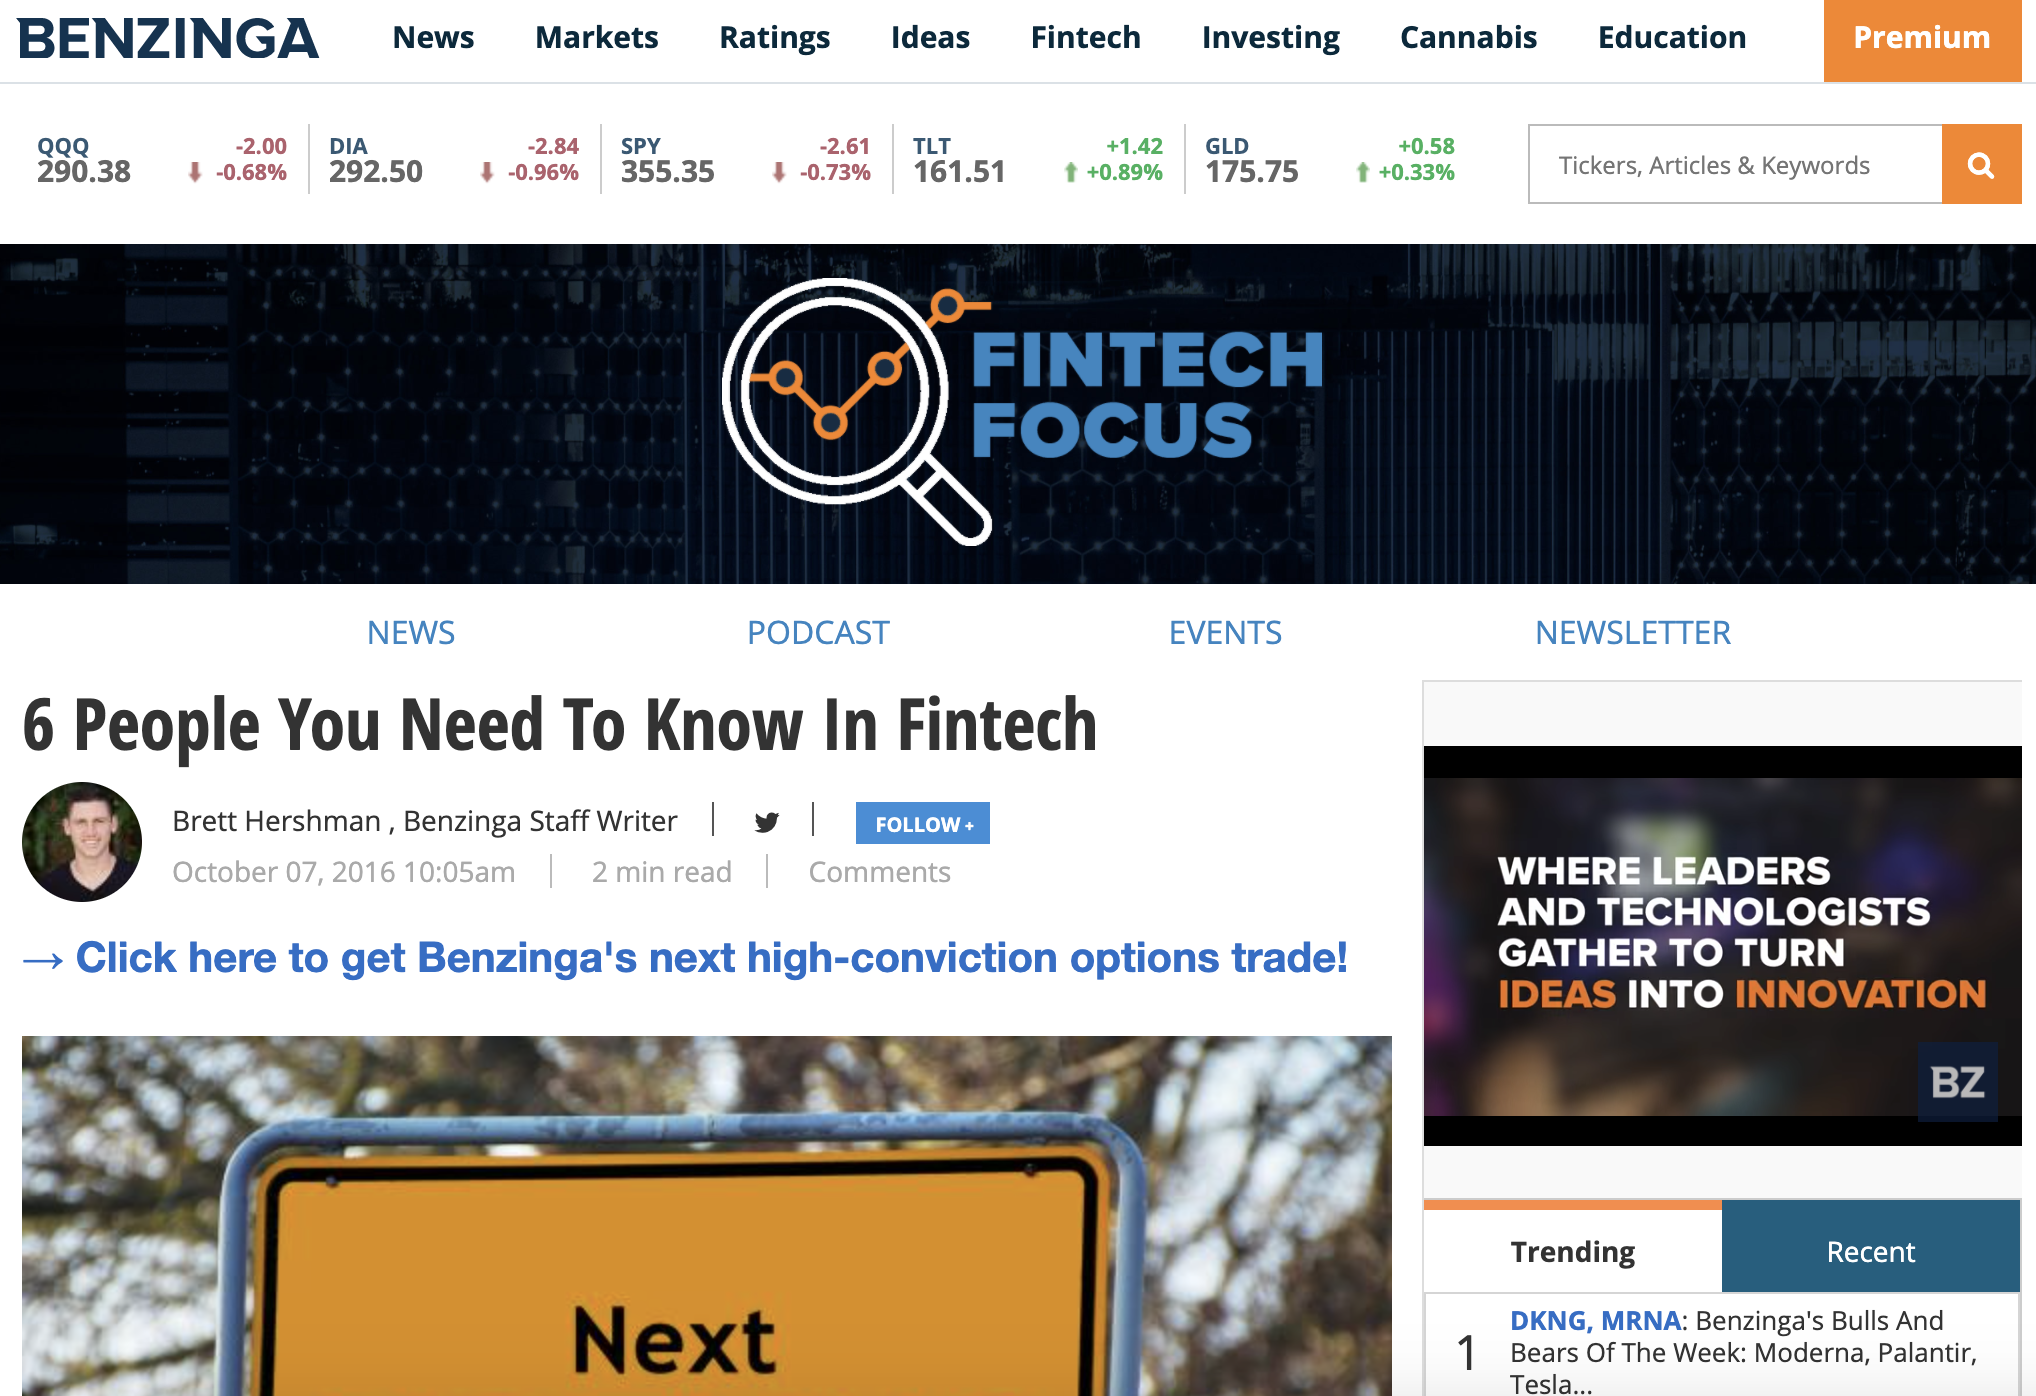 Benzinga Names Due Founder and CEO as Person to Know in Fintech